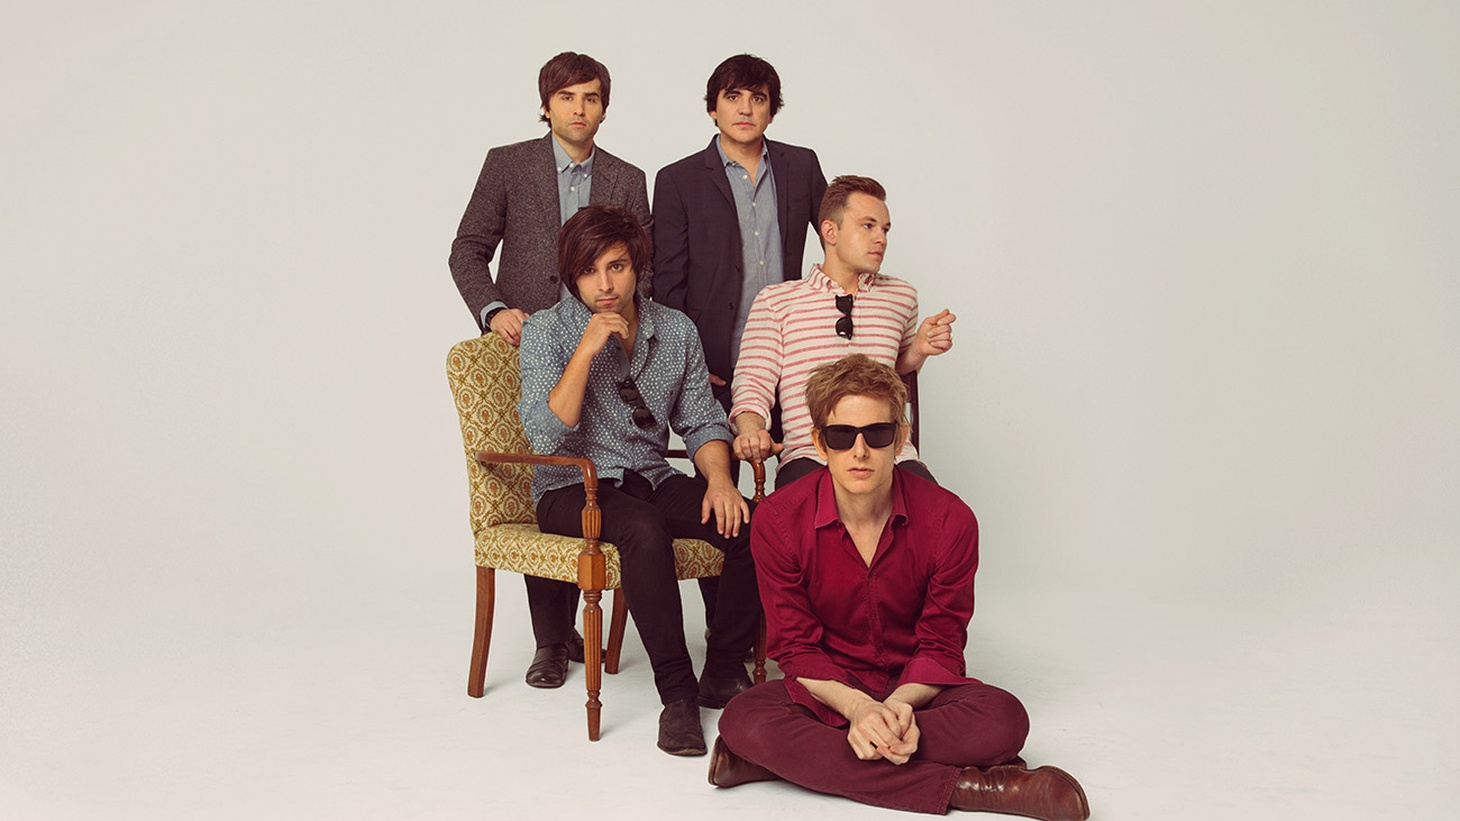 Spoon is one of the most consistently great rock bands of the modern era and each new album is highly anticipated.